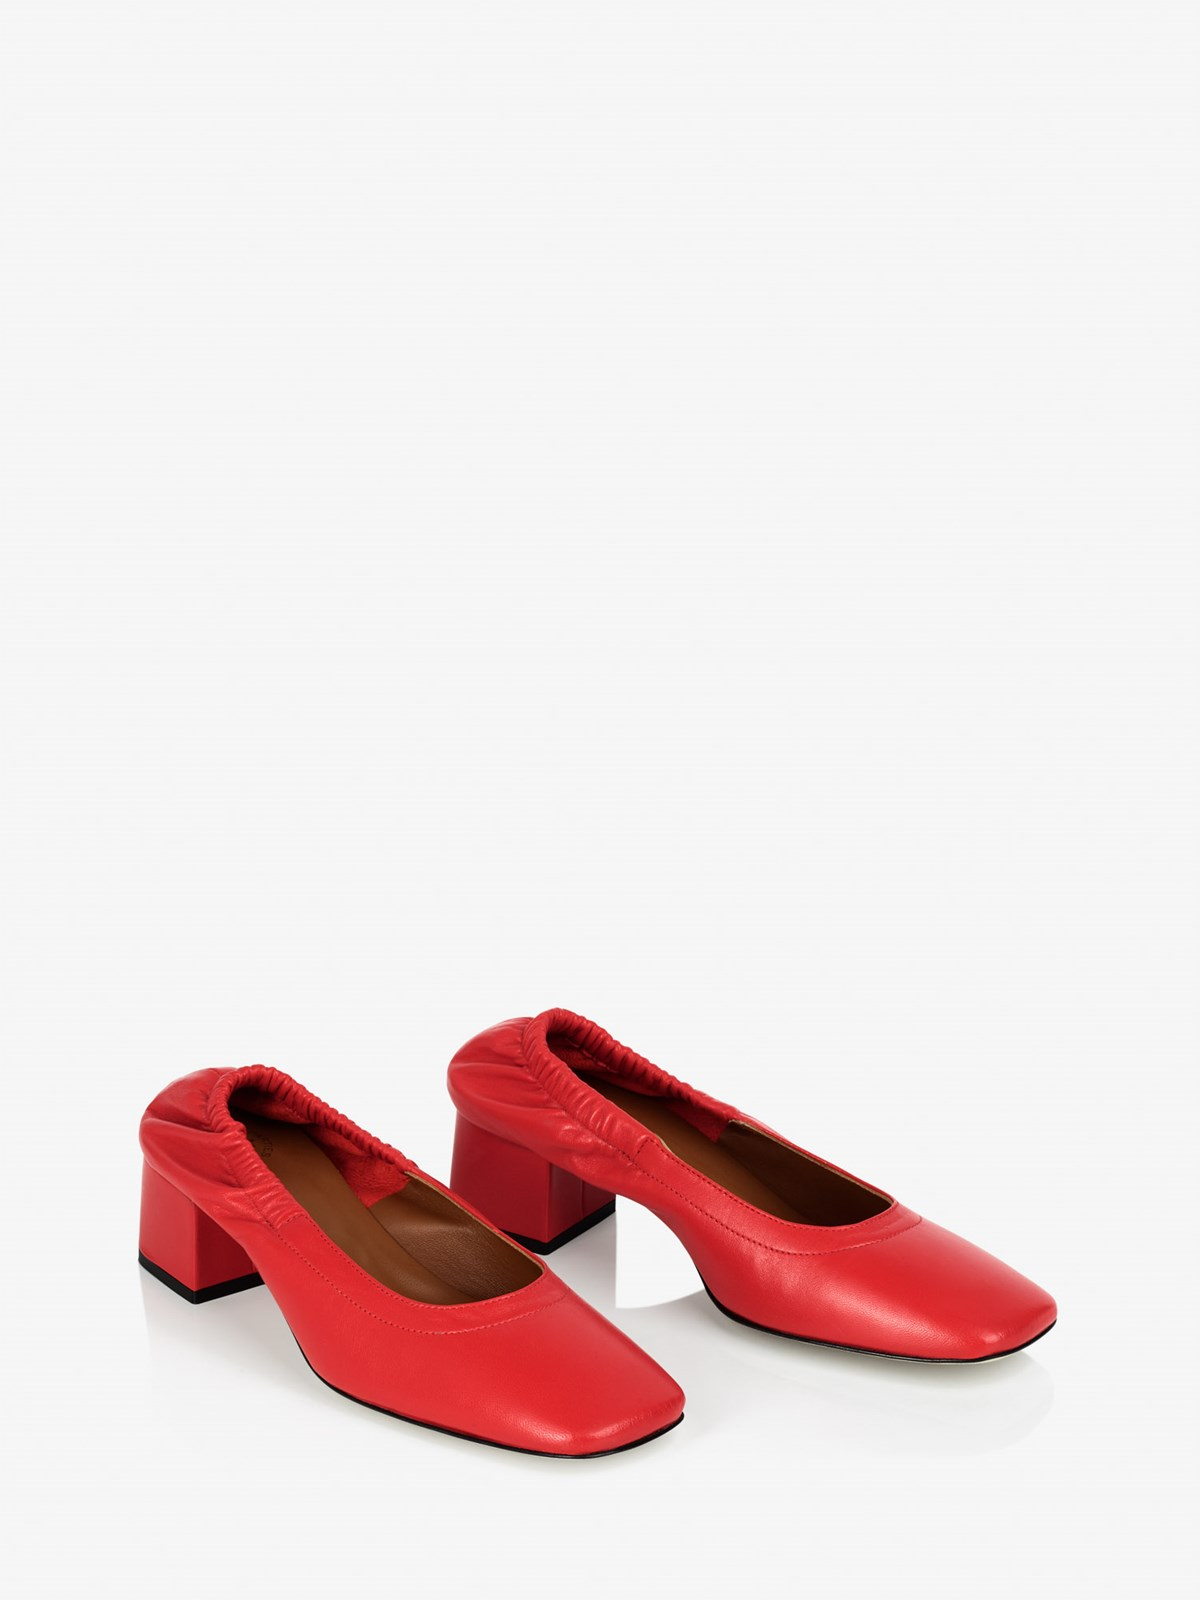 Fiore Tomato Red Pumps